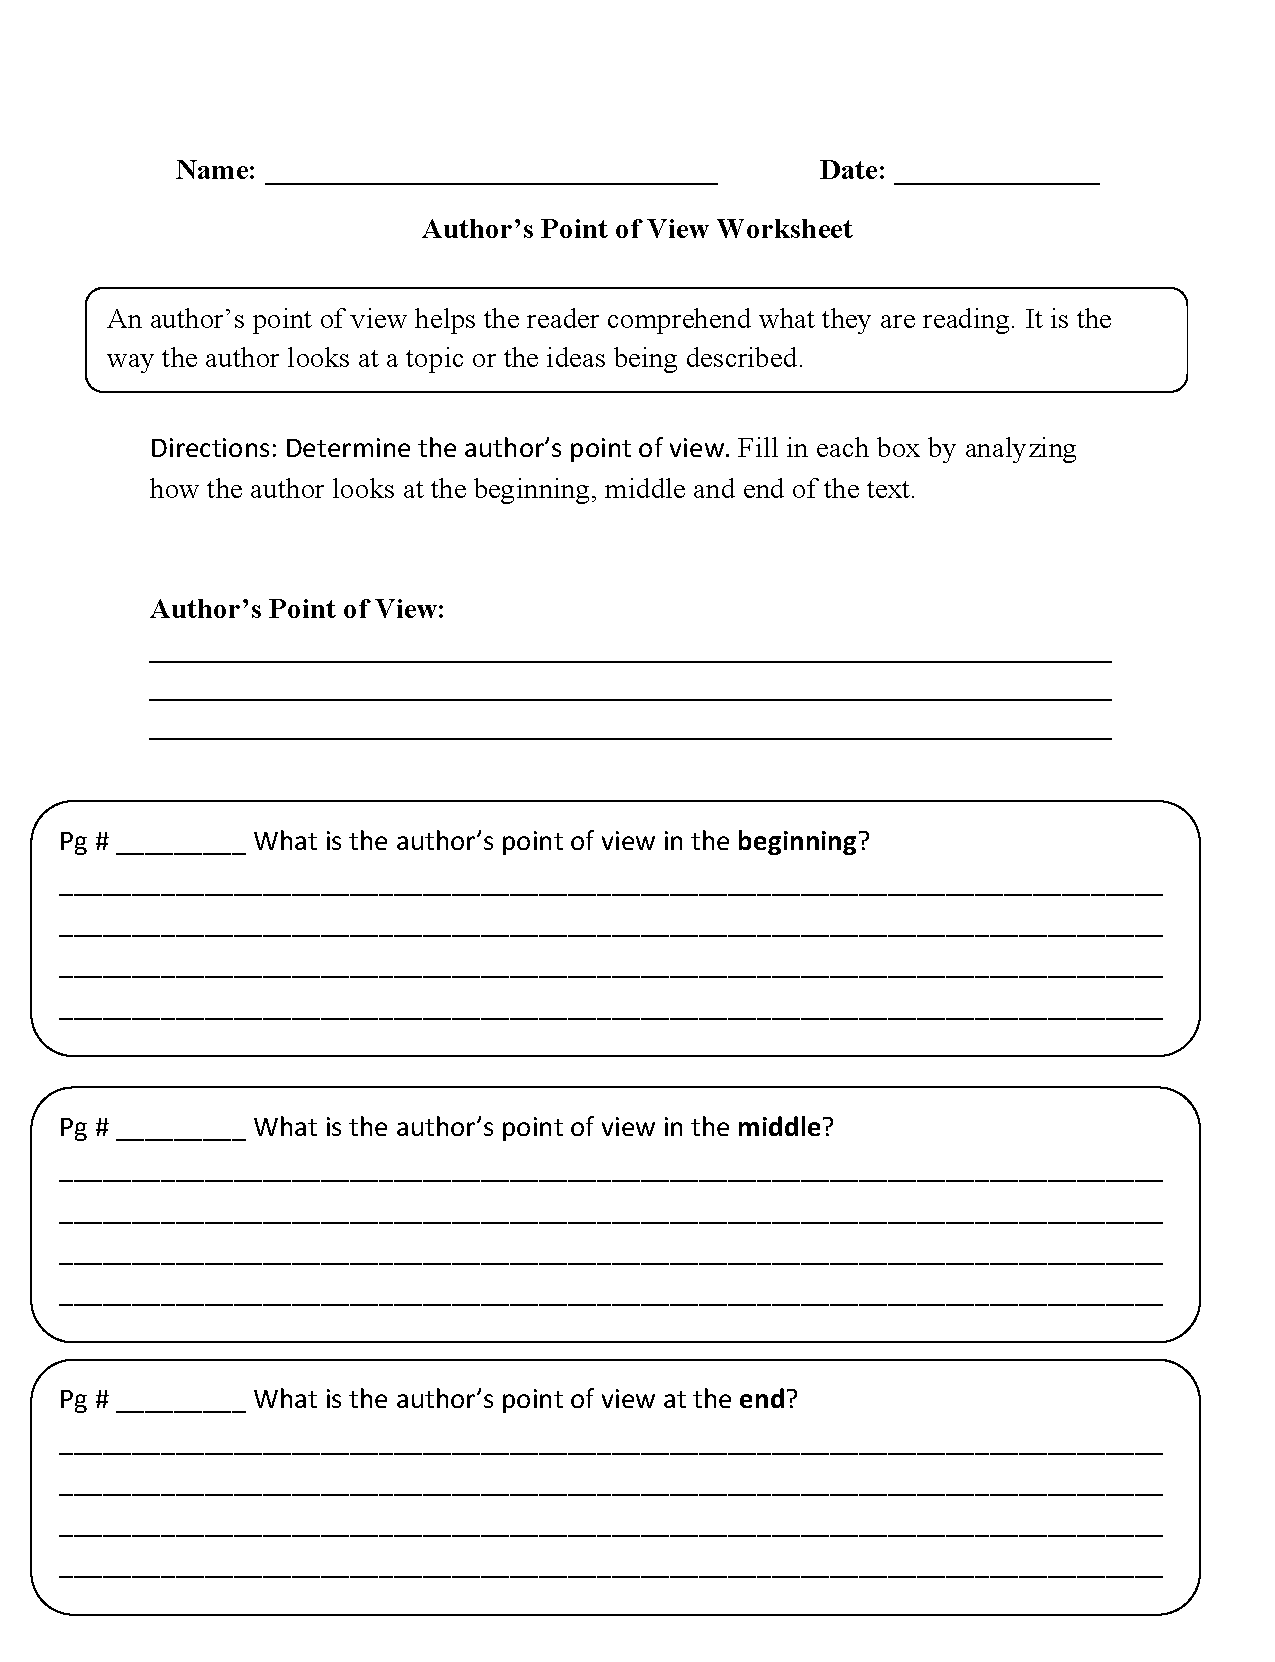 Weirdmailus  Outstanding Englishlinxcom  Point Of View Worksheets With Lovable Point Of View Worksheets With Beautiful Plate Tectonics Worksheet For Kids Also Worksheet For Addition In Addition French Time Worksheet And Martin Luther King Jr Free Worksheets As Well As Equivalent Worksheets Additionally Sheet Music Worksheets From Englishlinxcom With Weirdmailus  Lovable Englishlinxcom  Point Of View Worksheets With Beautiful Point Of View Worksheets And Outstanding Plate Tectonics Worksheet For Kids Also Worksheet For Addition In Addition French Time Worksheet From Englishlinxcom